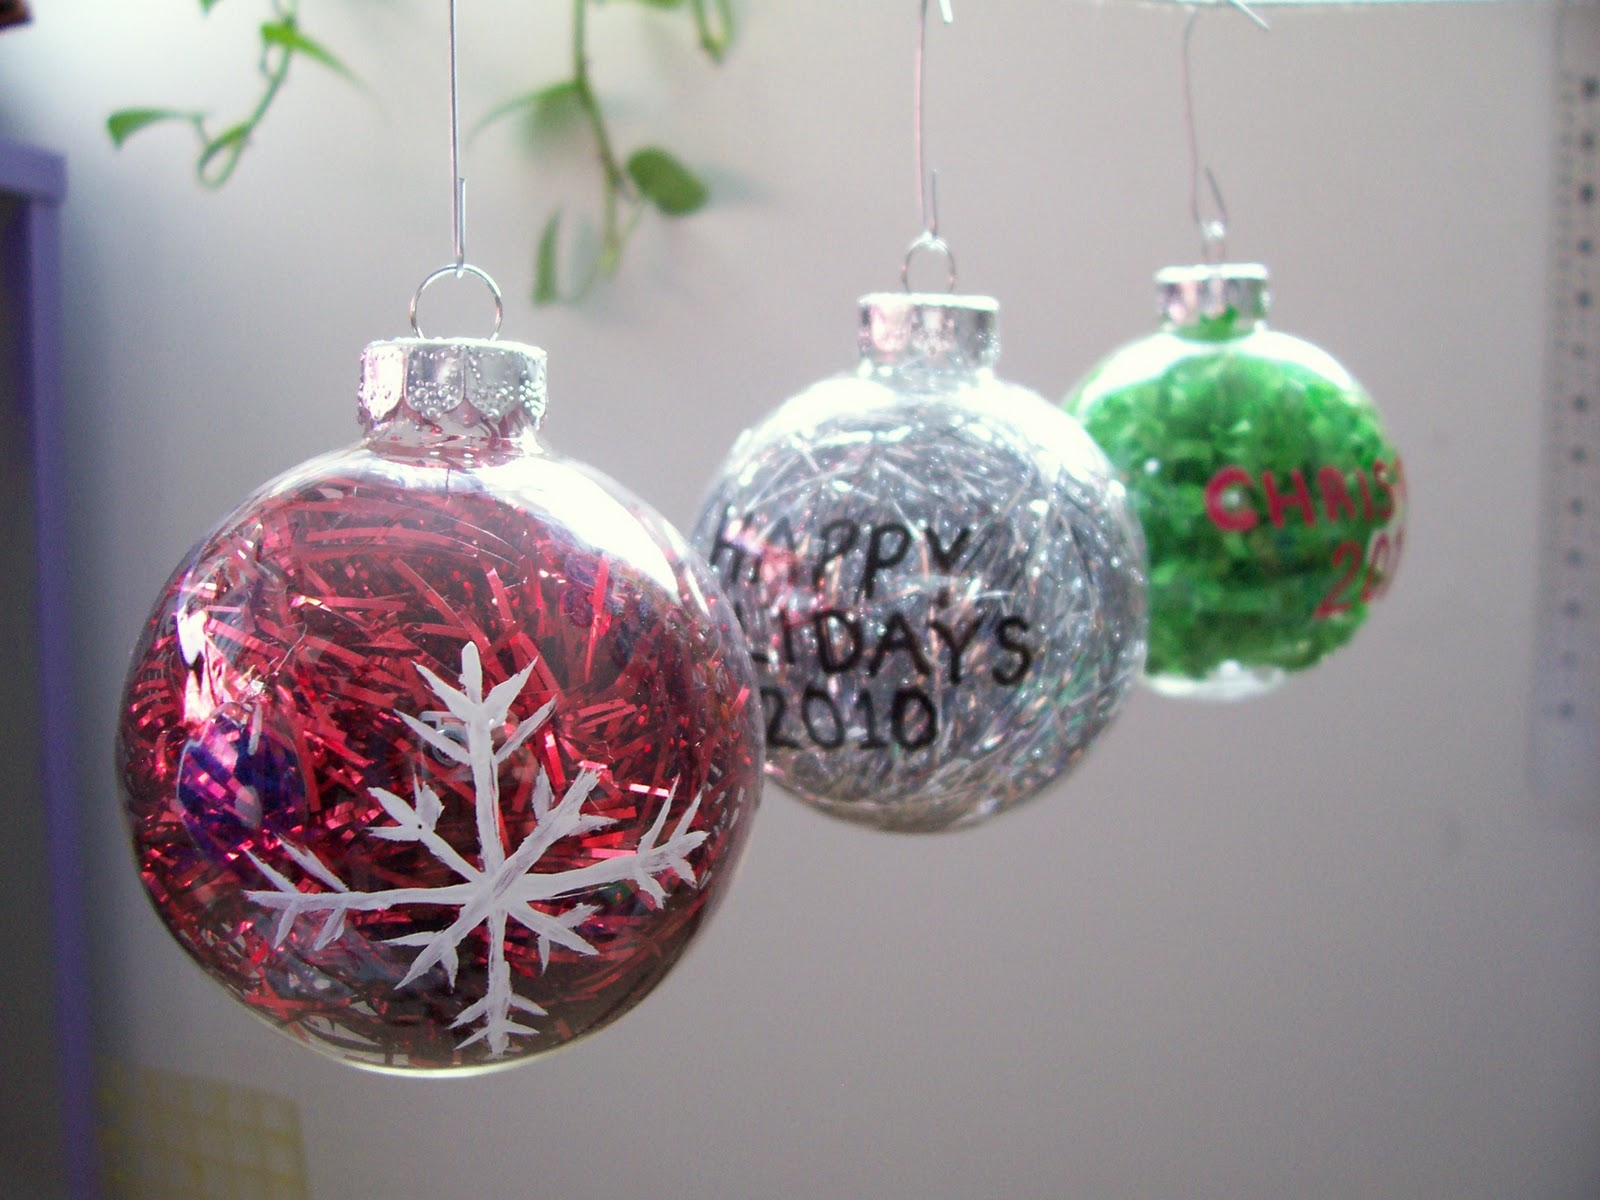 Glass Christmas Balls Decoration Ideas : Craftopotamus glass holiday ornament